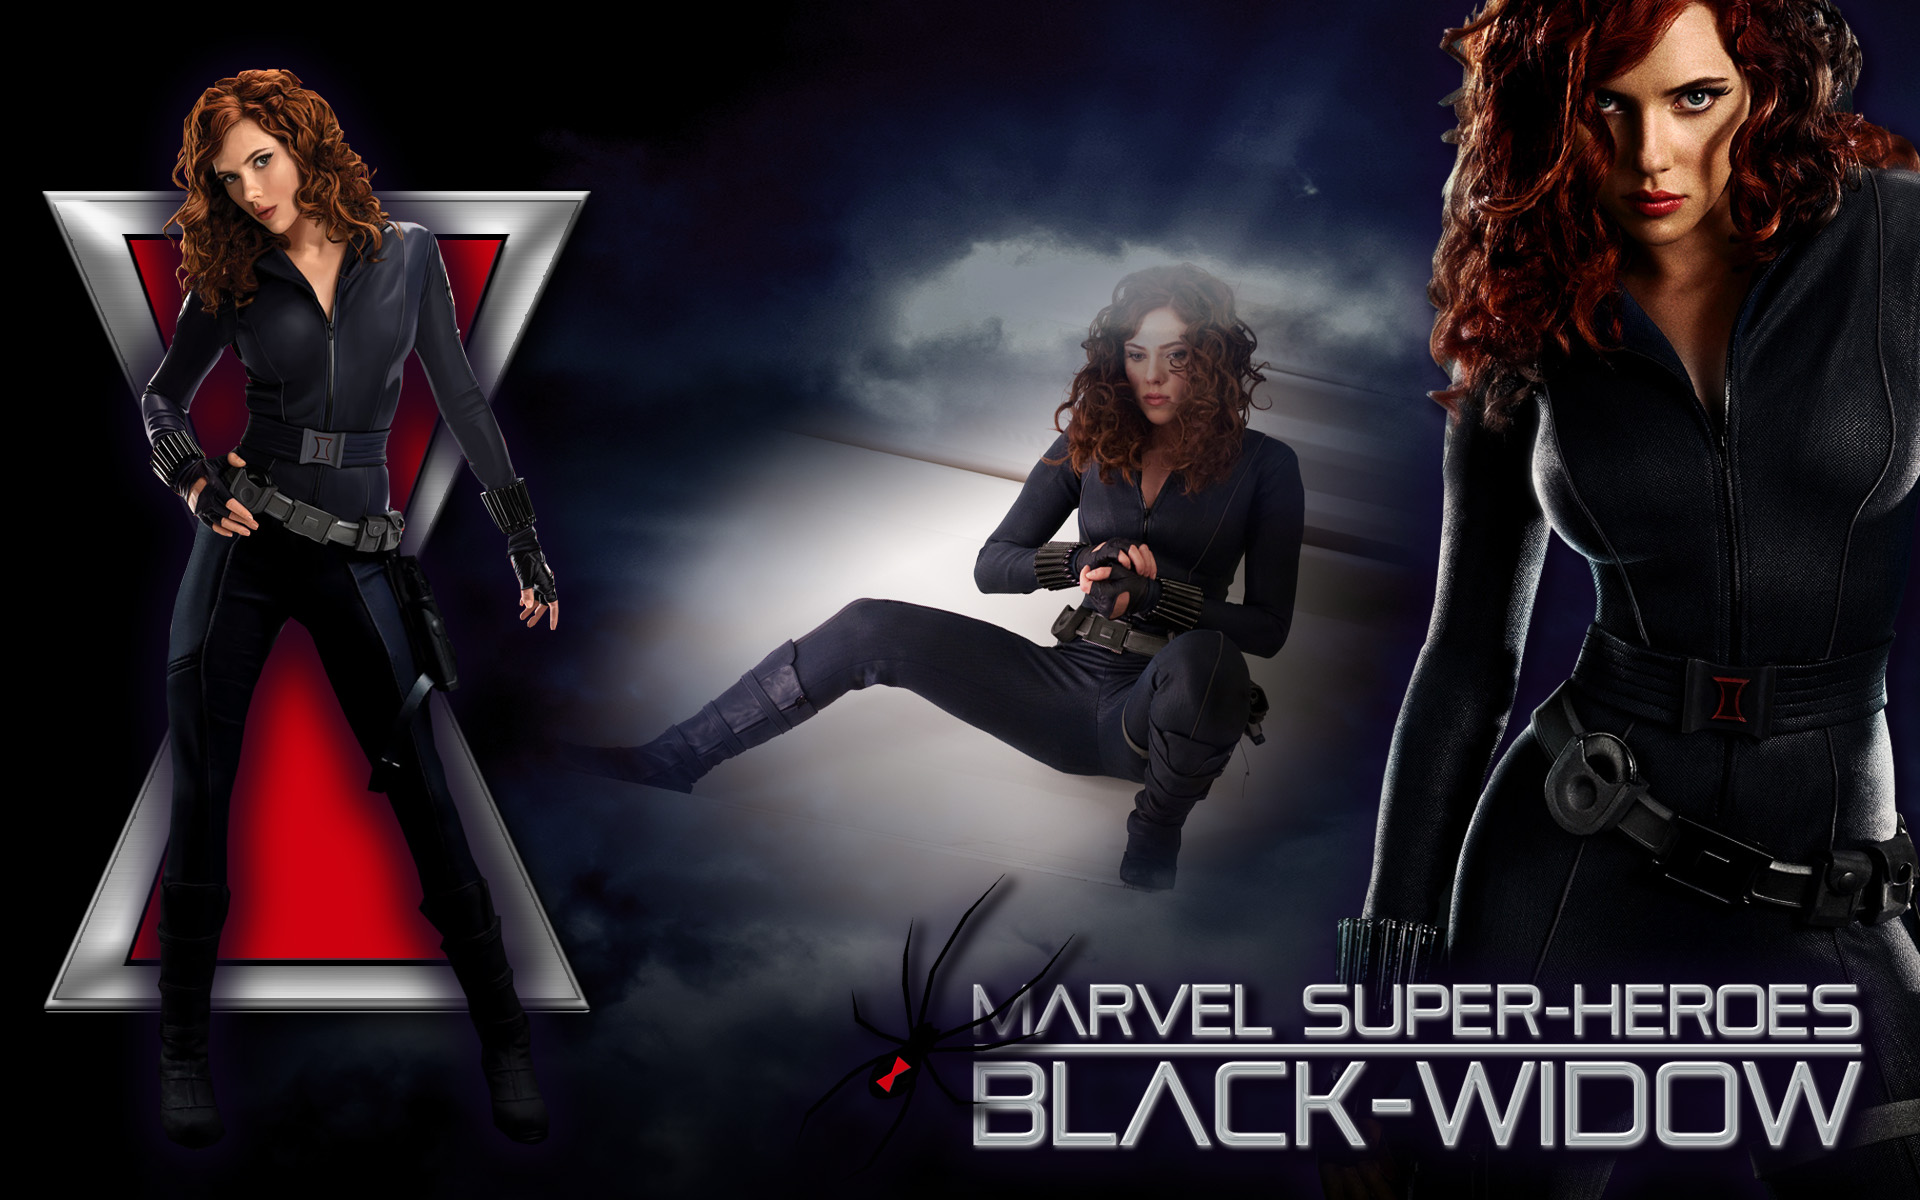 Black widow marvel wallpaper